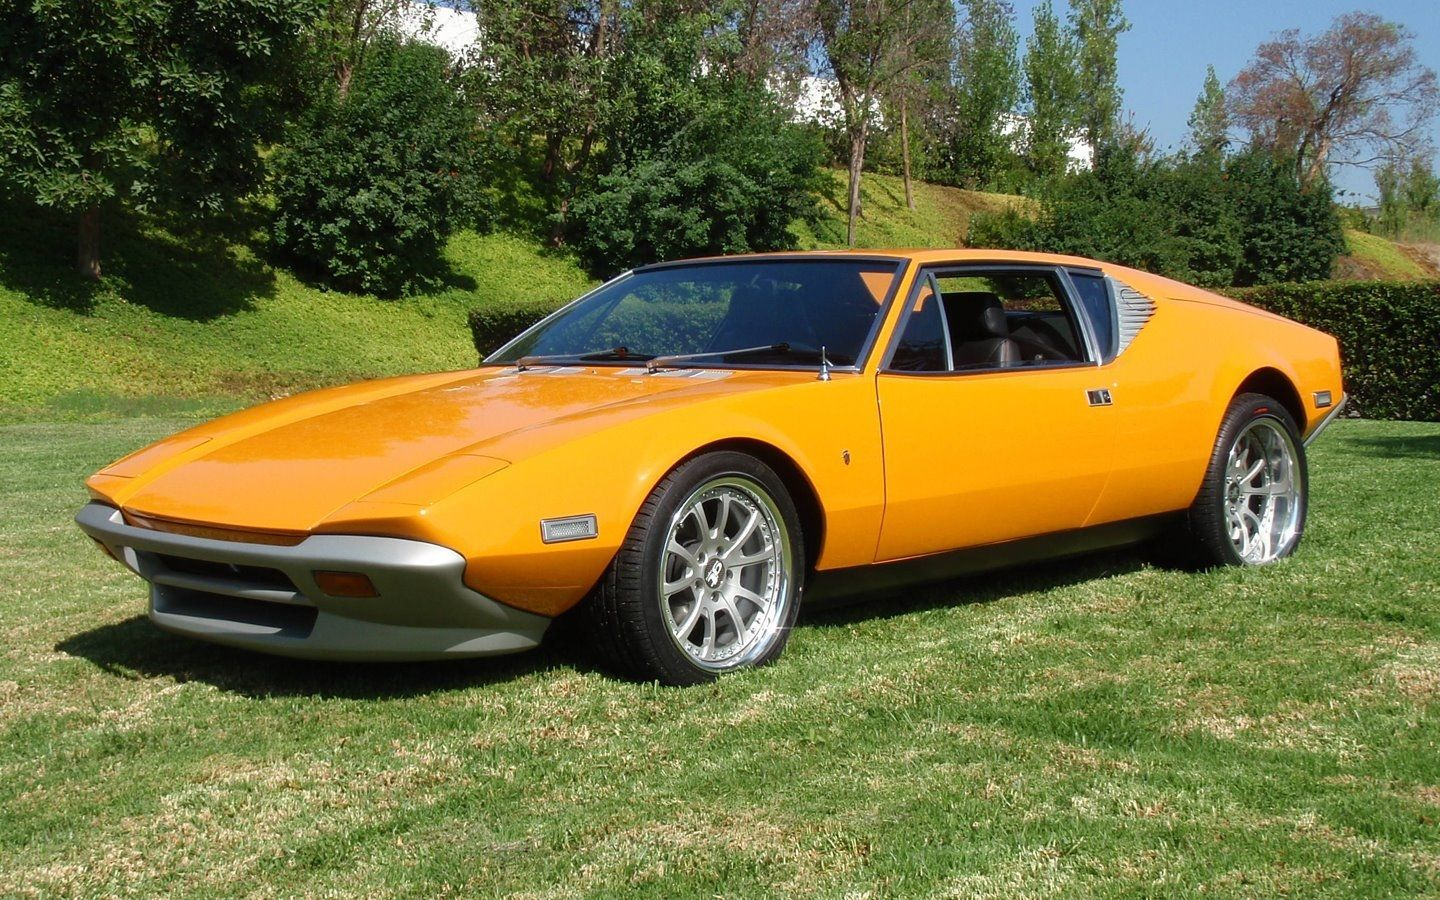 DeTomaso Pantera Dont know anything about this car except that